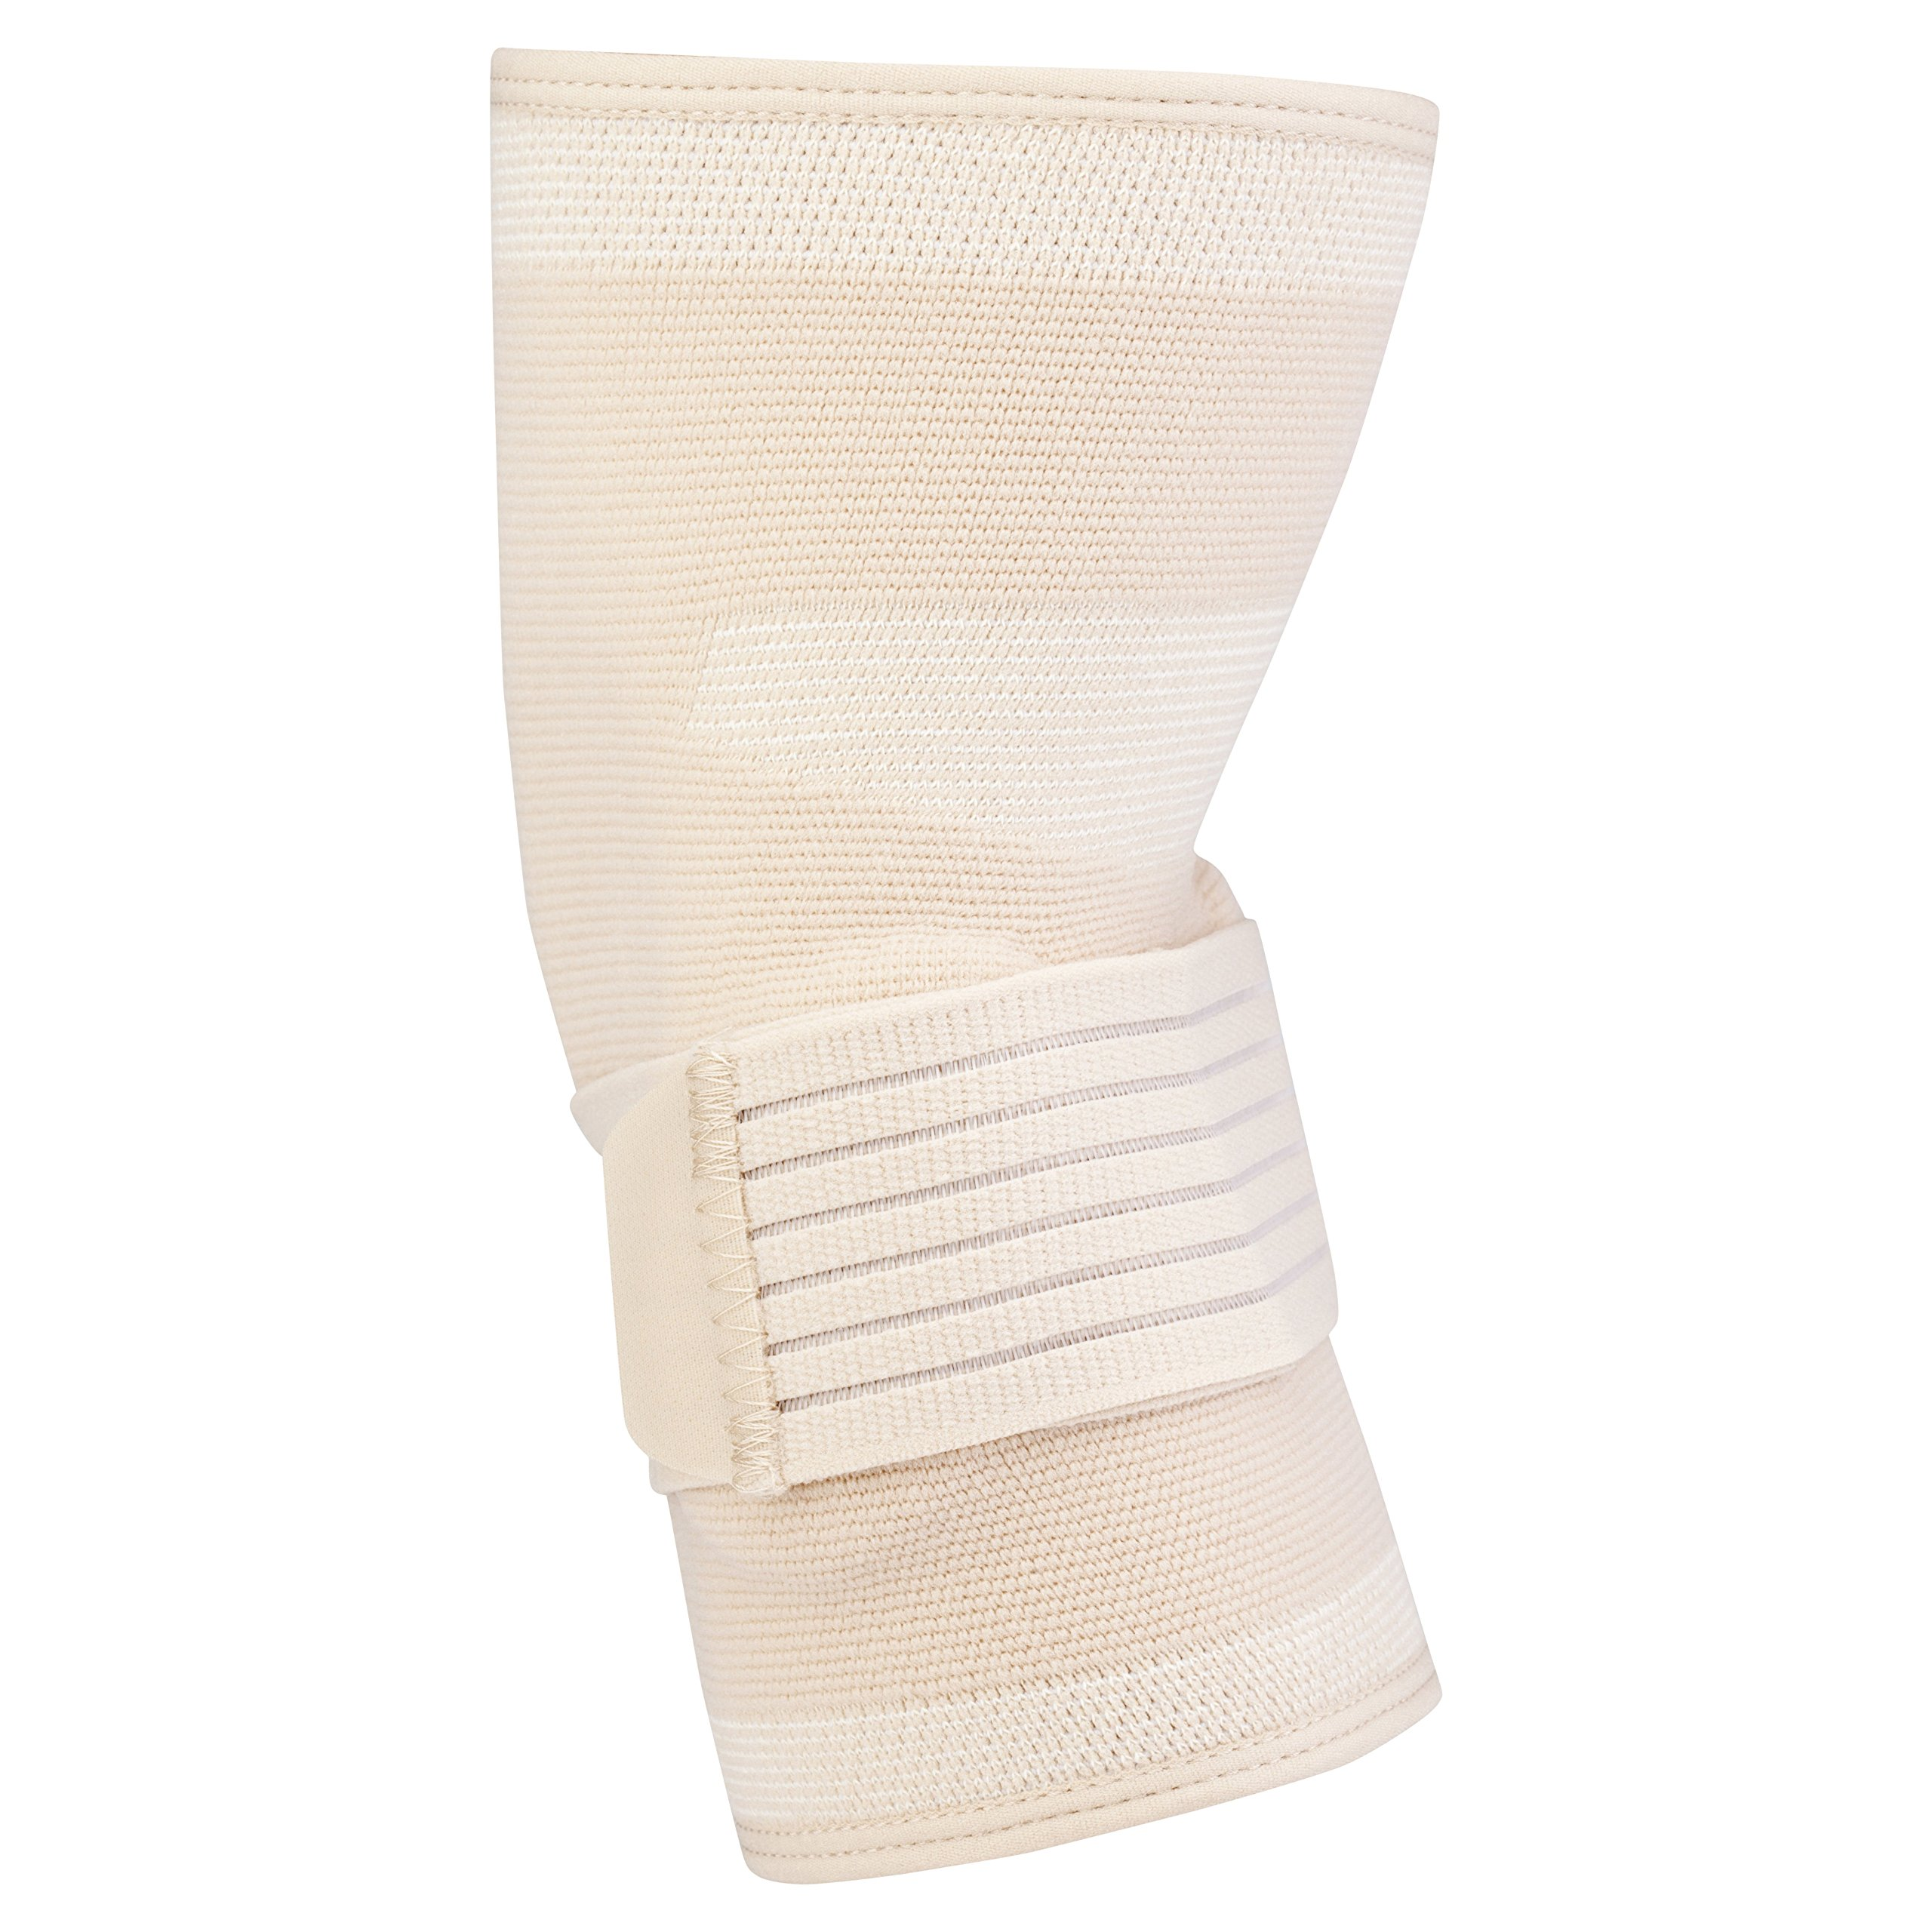 Futuro Elbow Support with Pressure Pads, Moderate Stabilizing Support, Medium